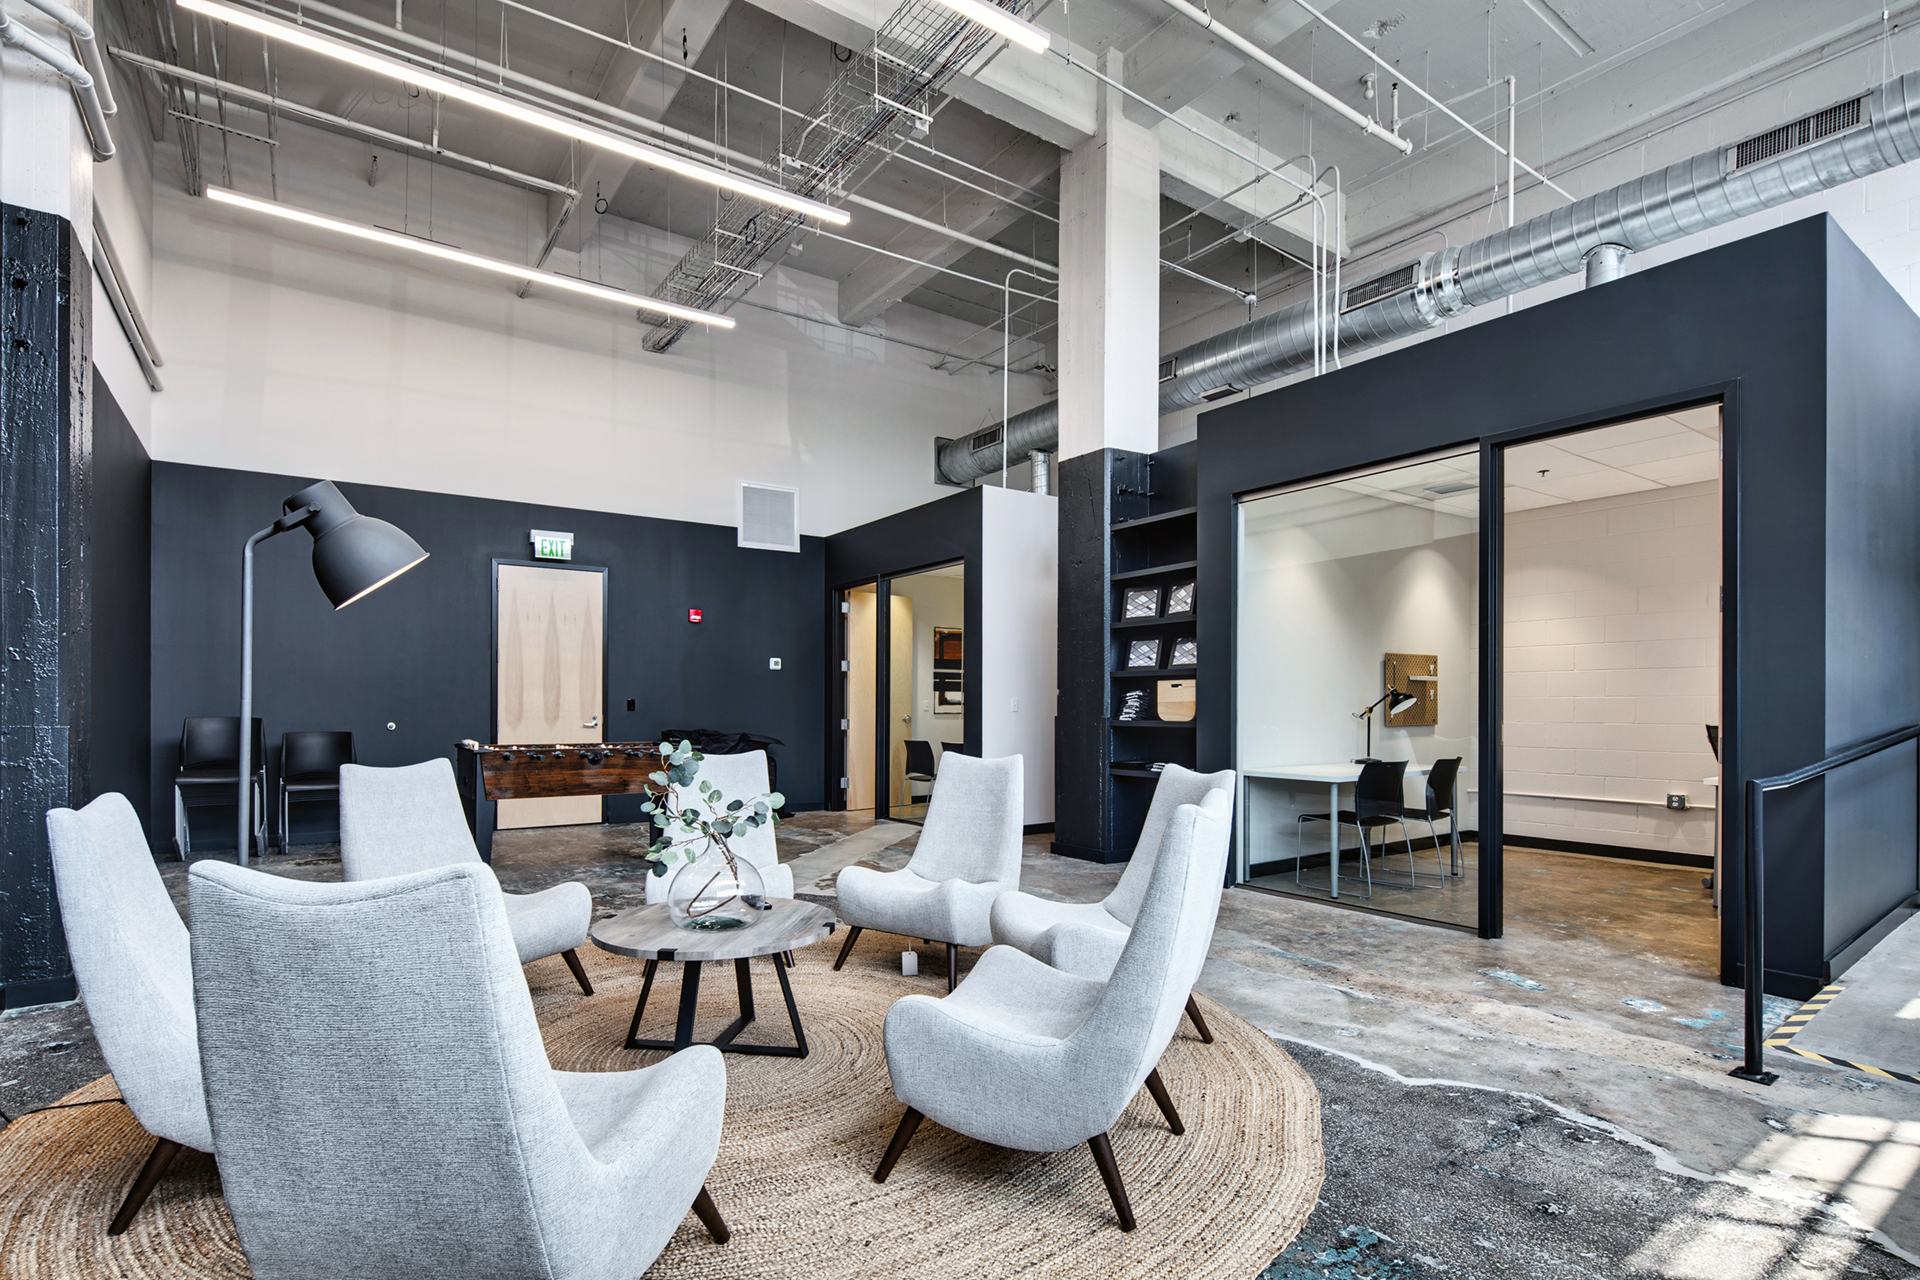 Lobby with seating area for working professionals at The Denham Building loft apartments for rent in South Birmingham, AL